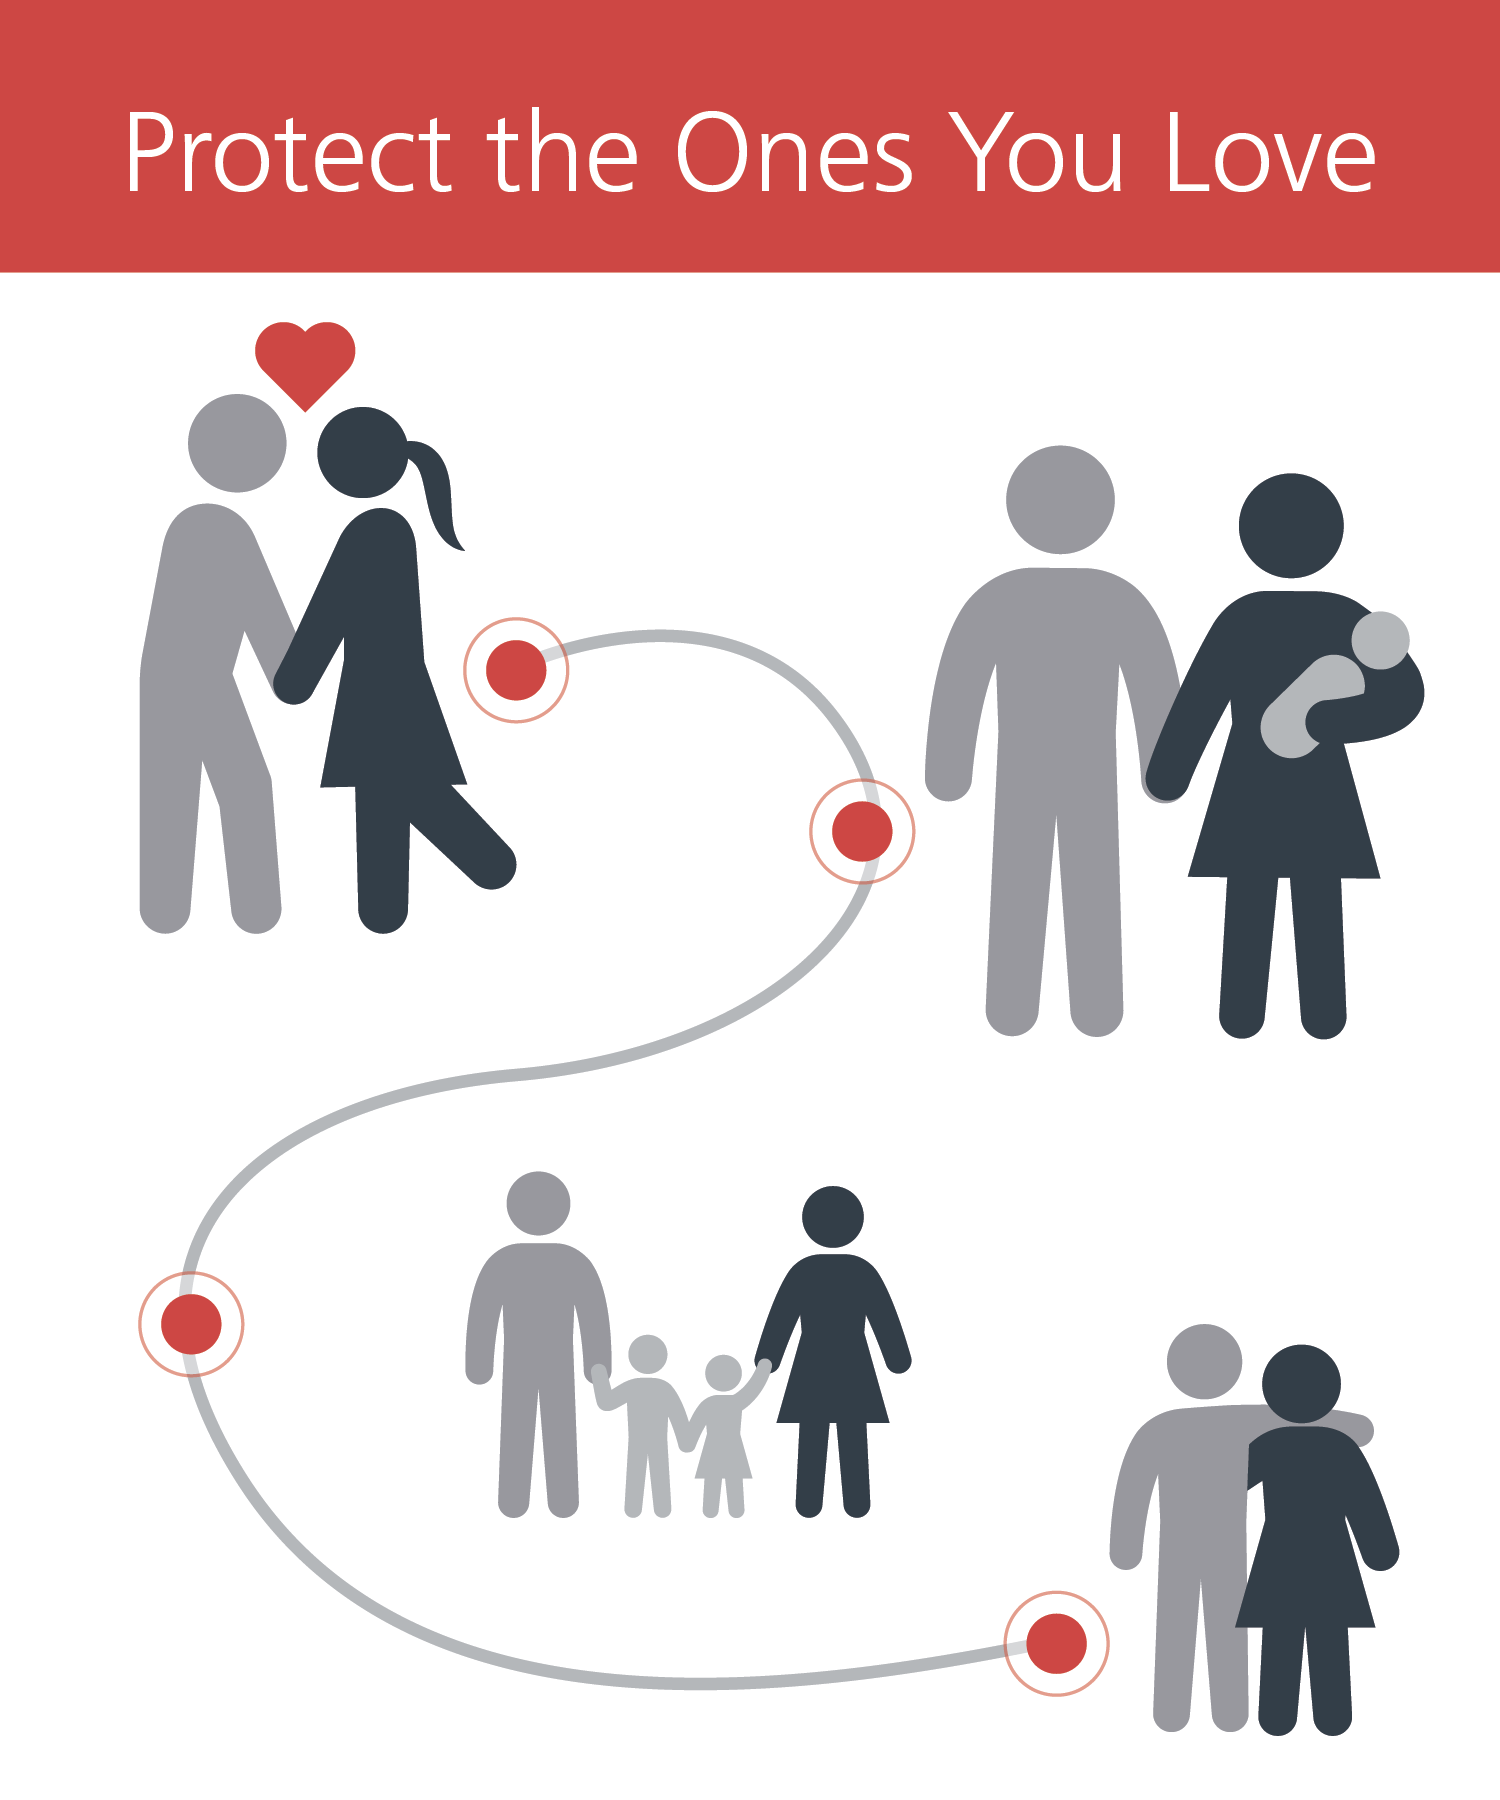 Pin by WFG (World Financial Group) on Protect the Ones You ...